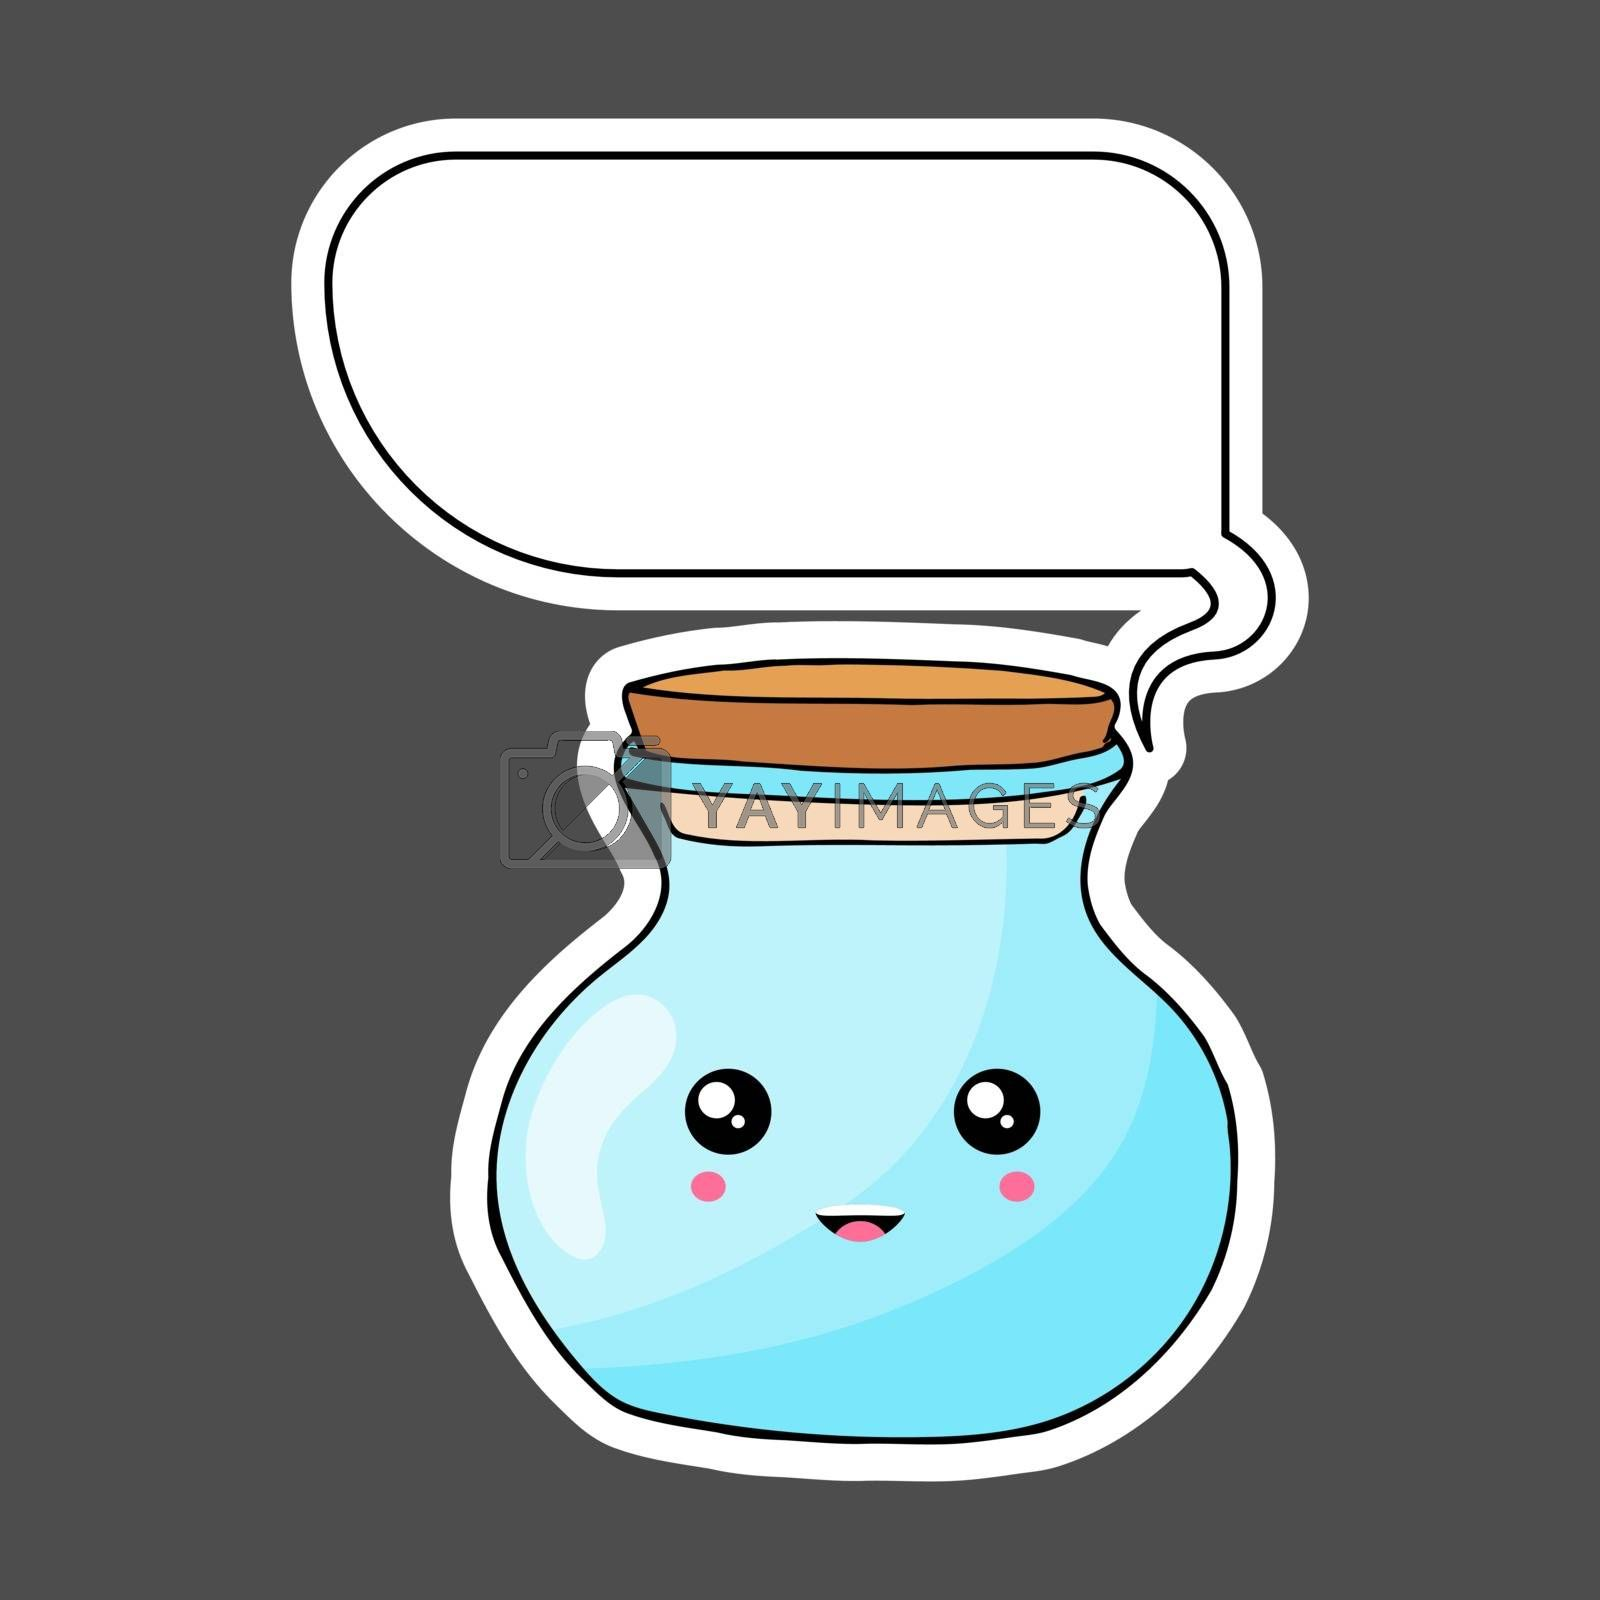 Kawaii sticker colorful cartoon jar with thought bubble. Vector illustration isolated on dark background.